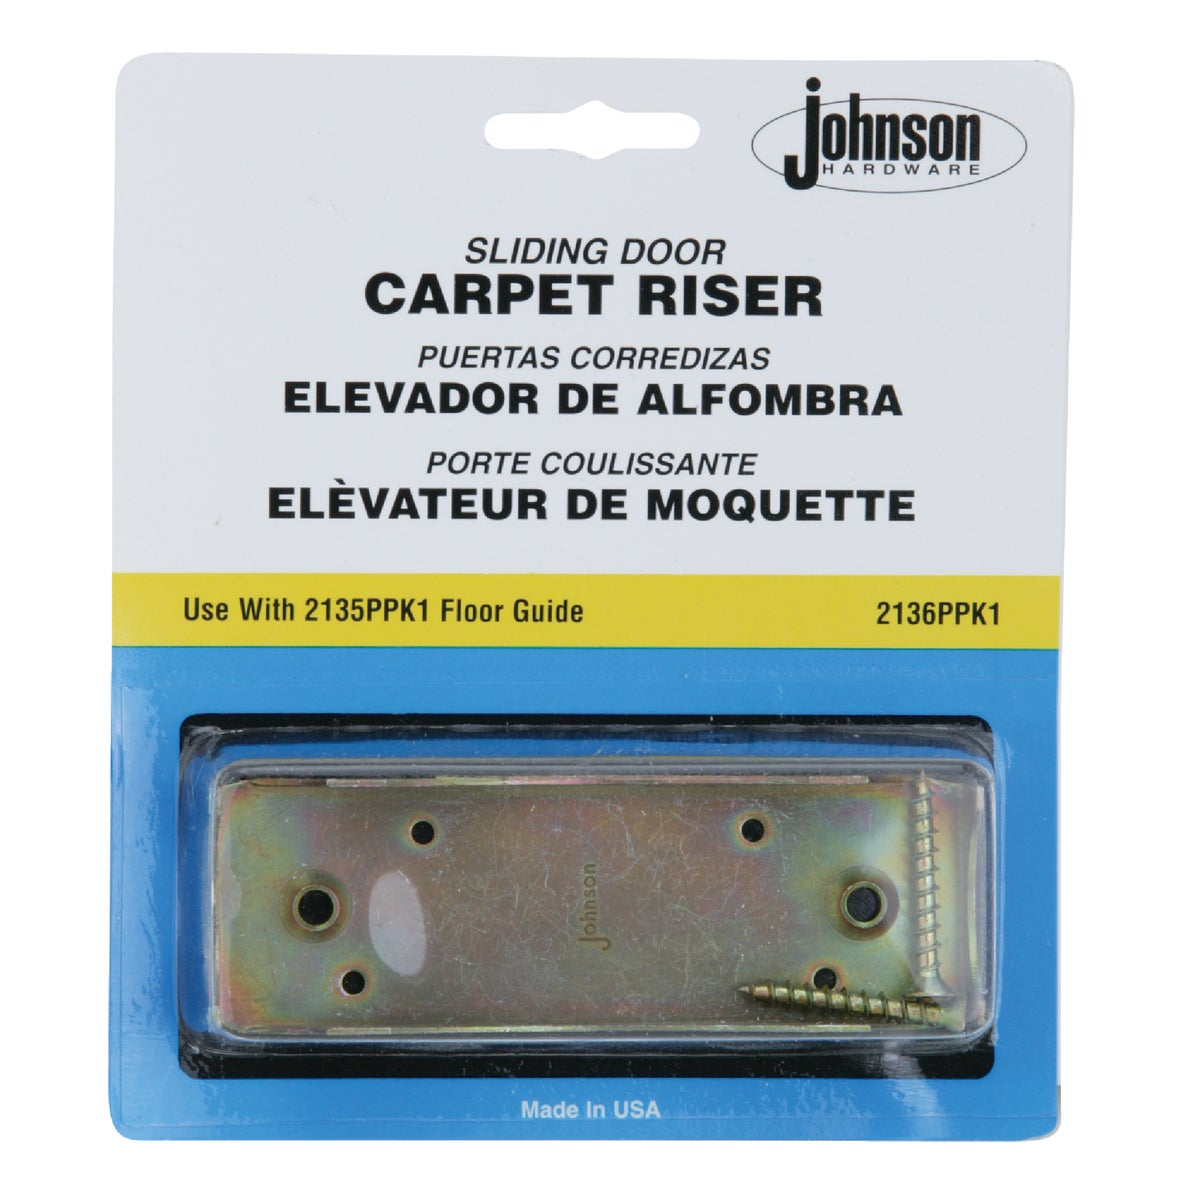 CARPET RISER - 2136PPK1 by Johnson Products